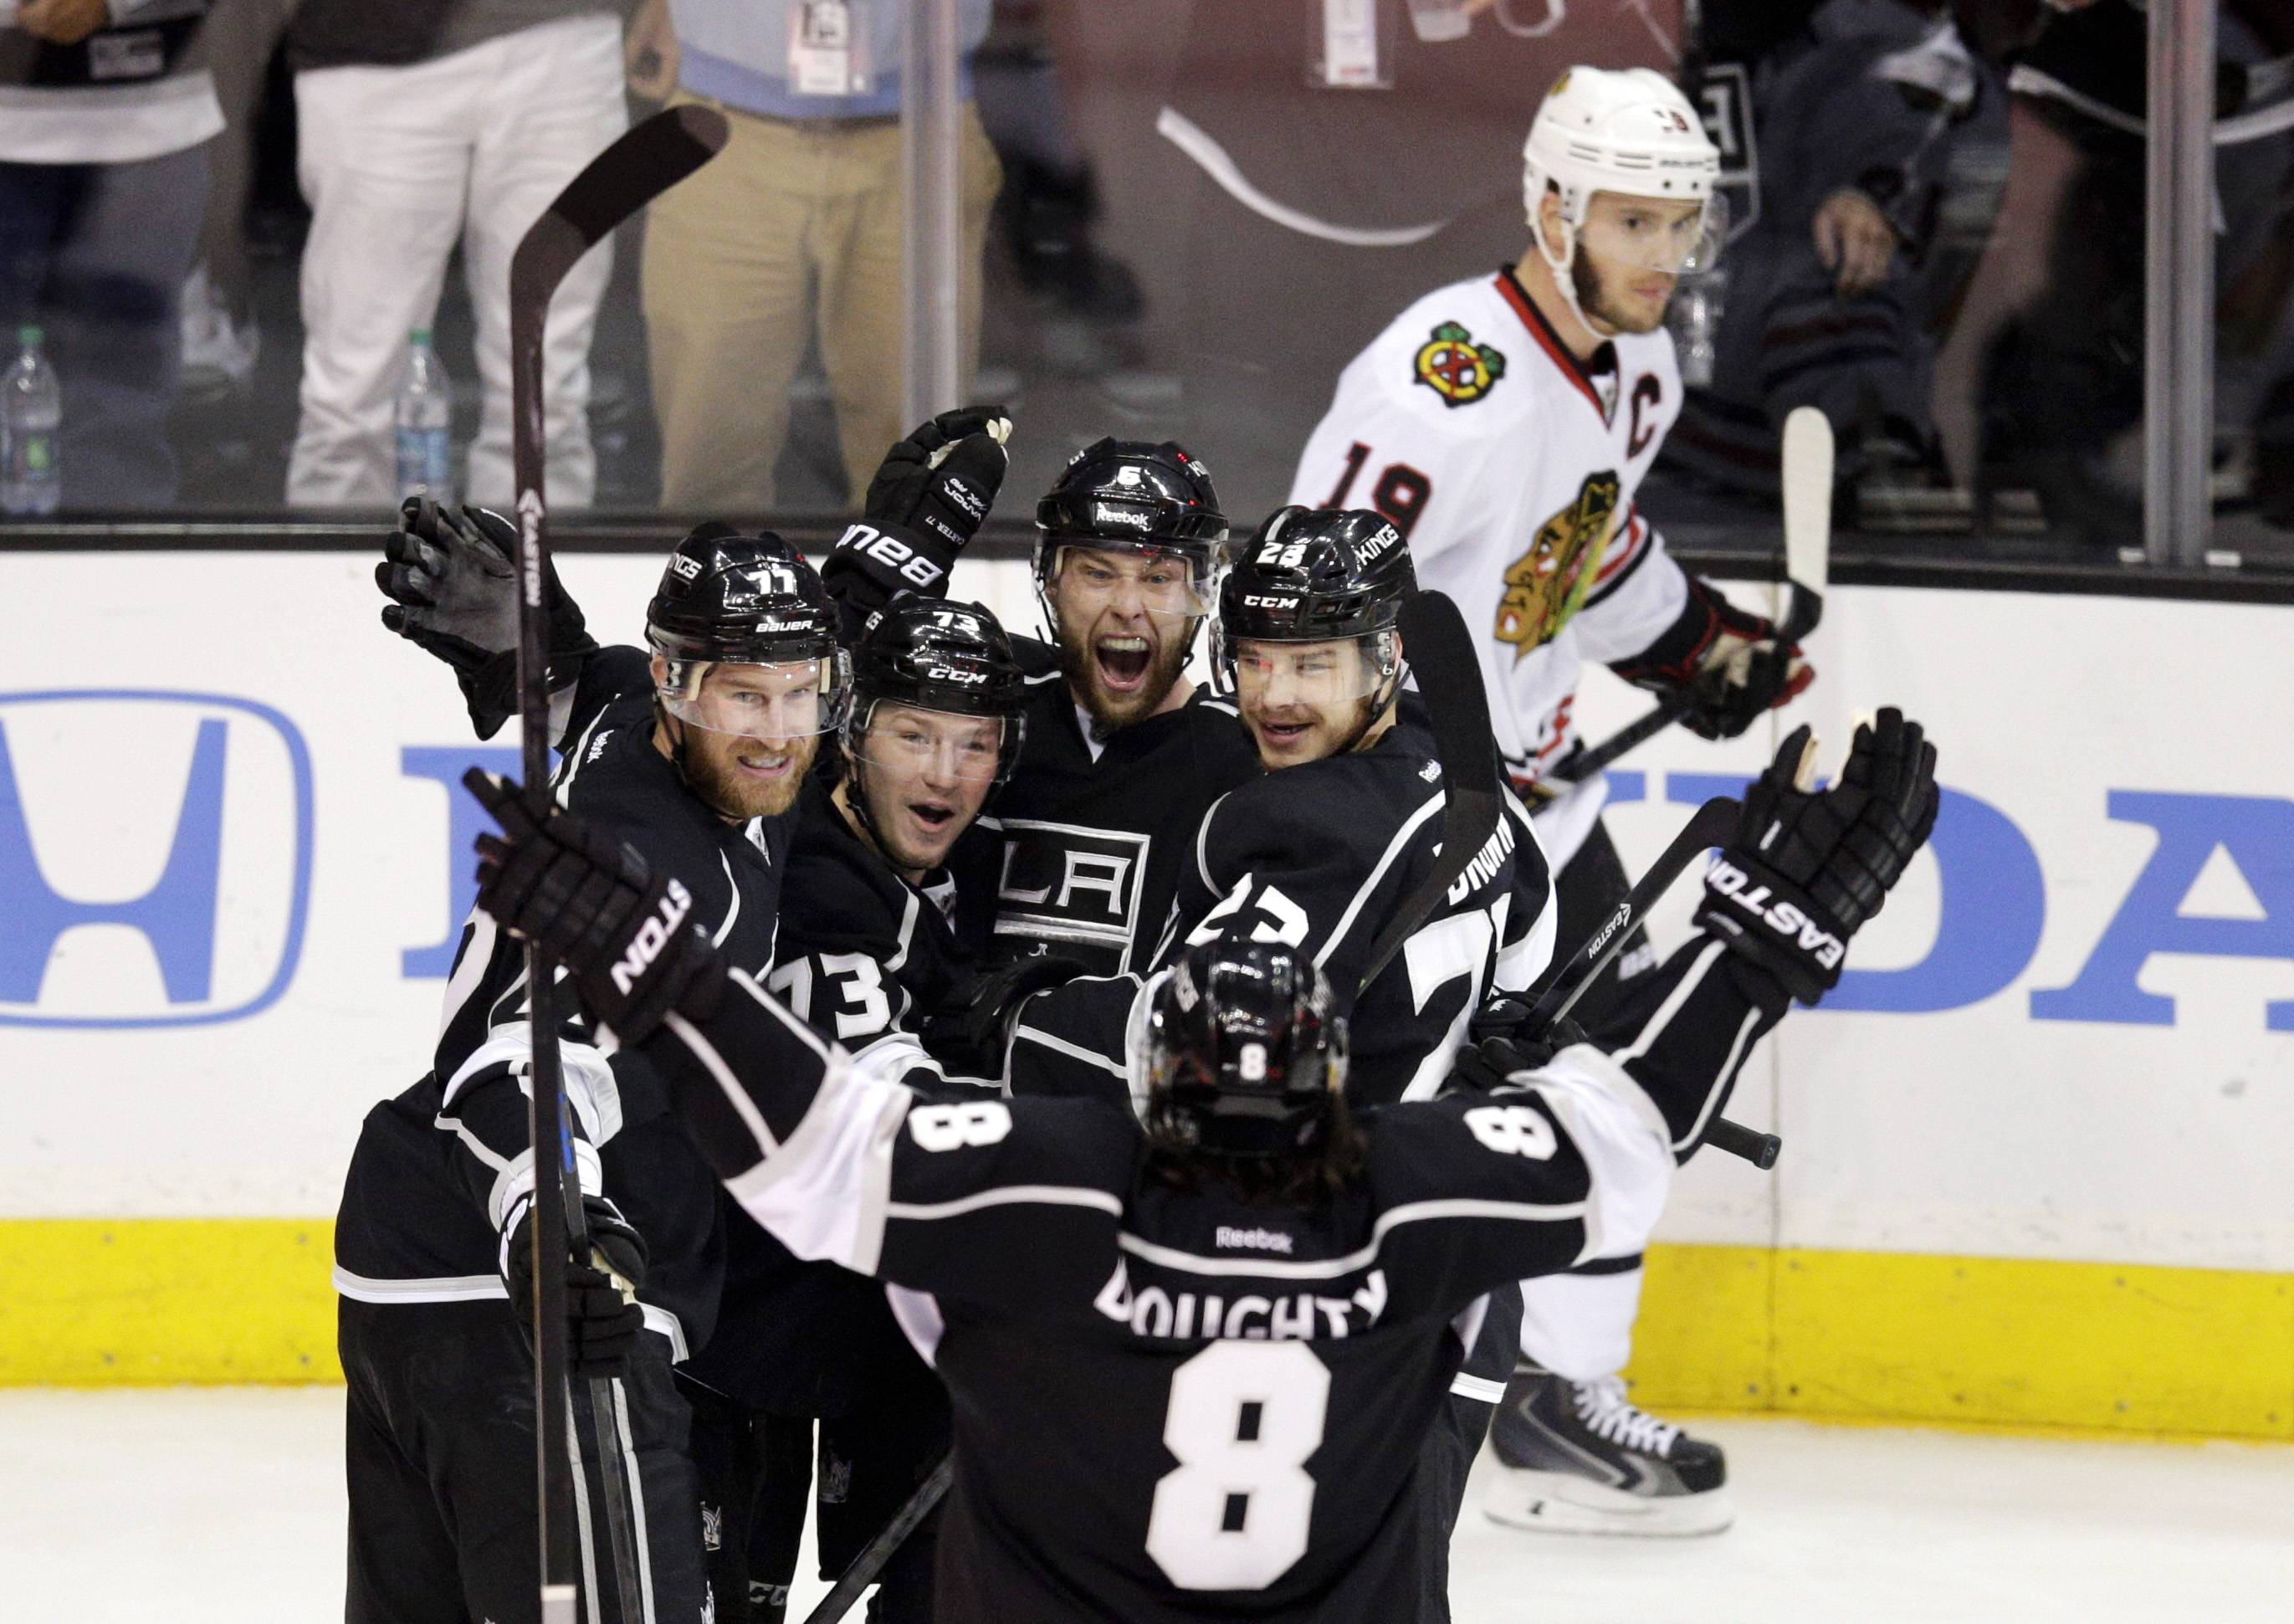 Los Angeles Kings' Jeff Carter (77), Tyler Toffoli (73), Jake Muzzin (6), Dustin Brown (23) and Drew Doughty (8) celebrate a goal by Muzzin as Chicago Blackhawks' Jonathan Toews (19) skates behind them during the first period of Game 4. The Hawks need 3 straight wins to move on to the Finals now.